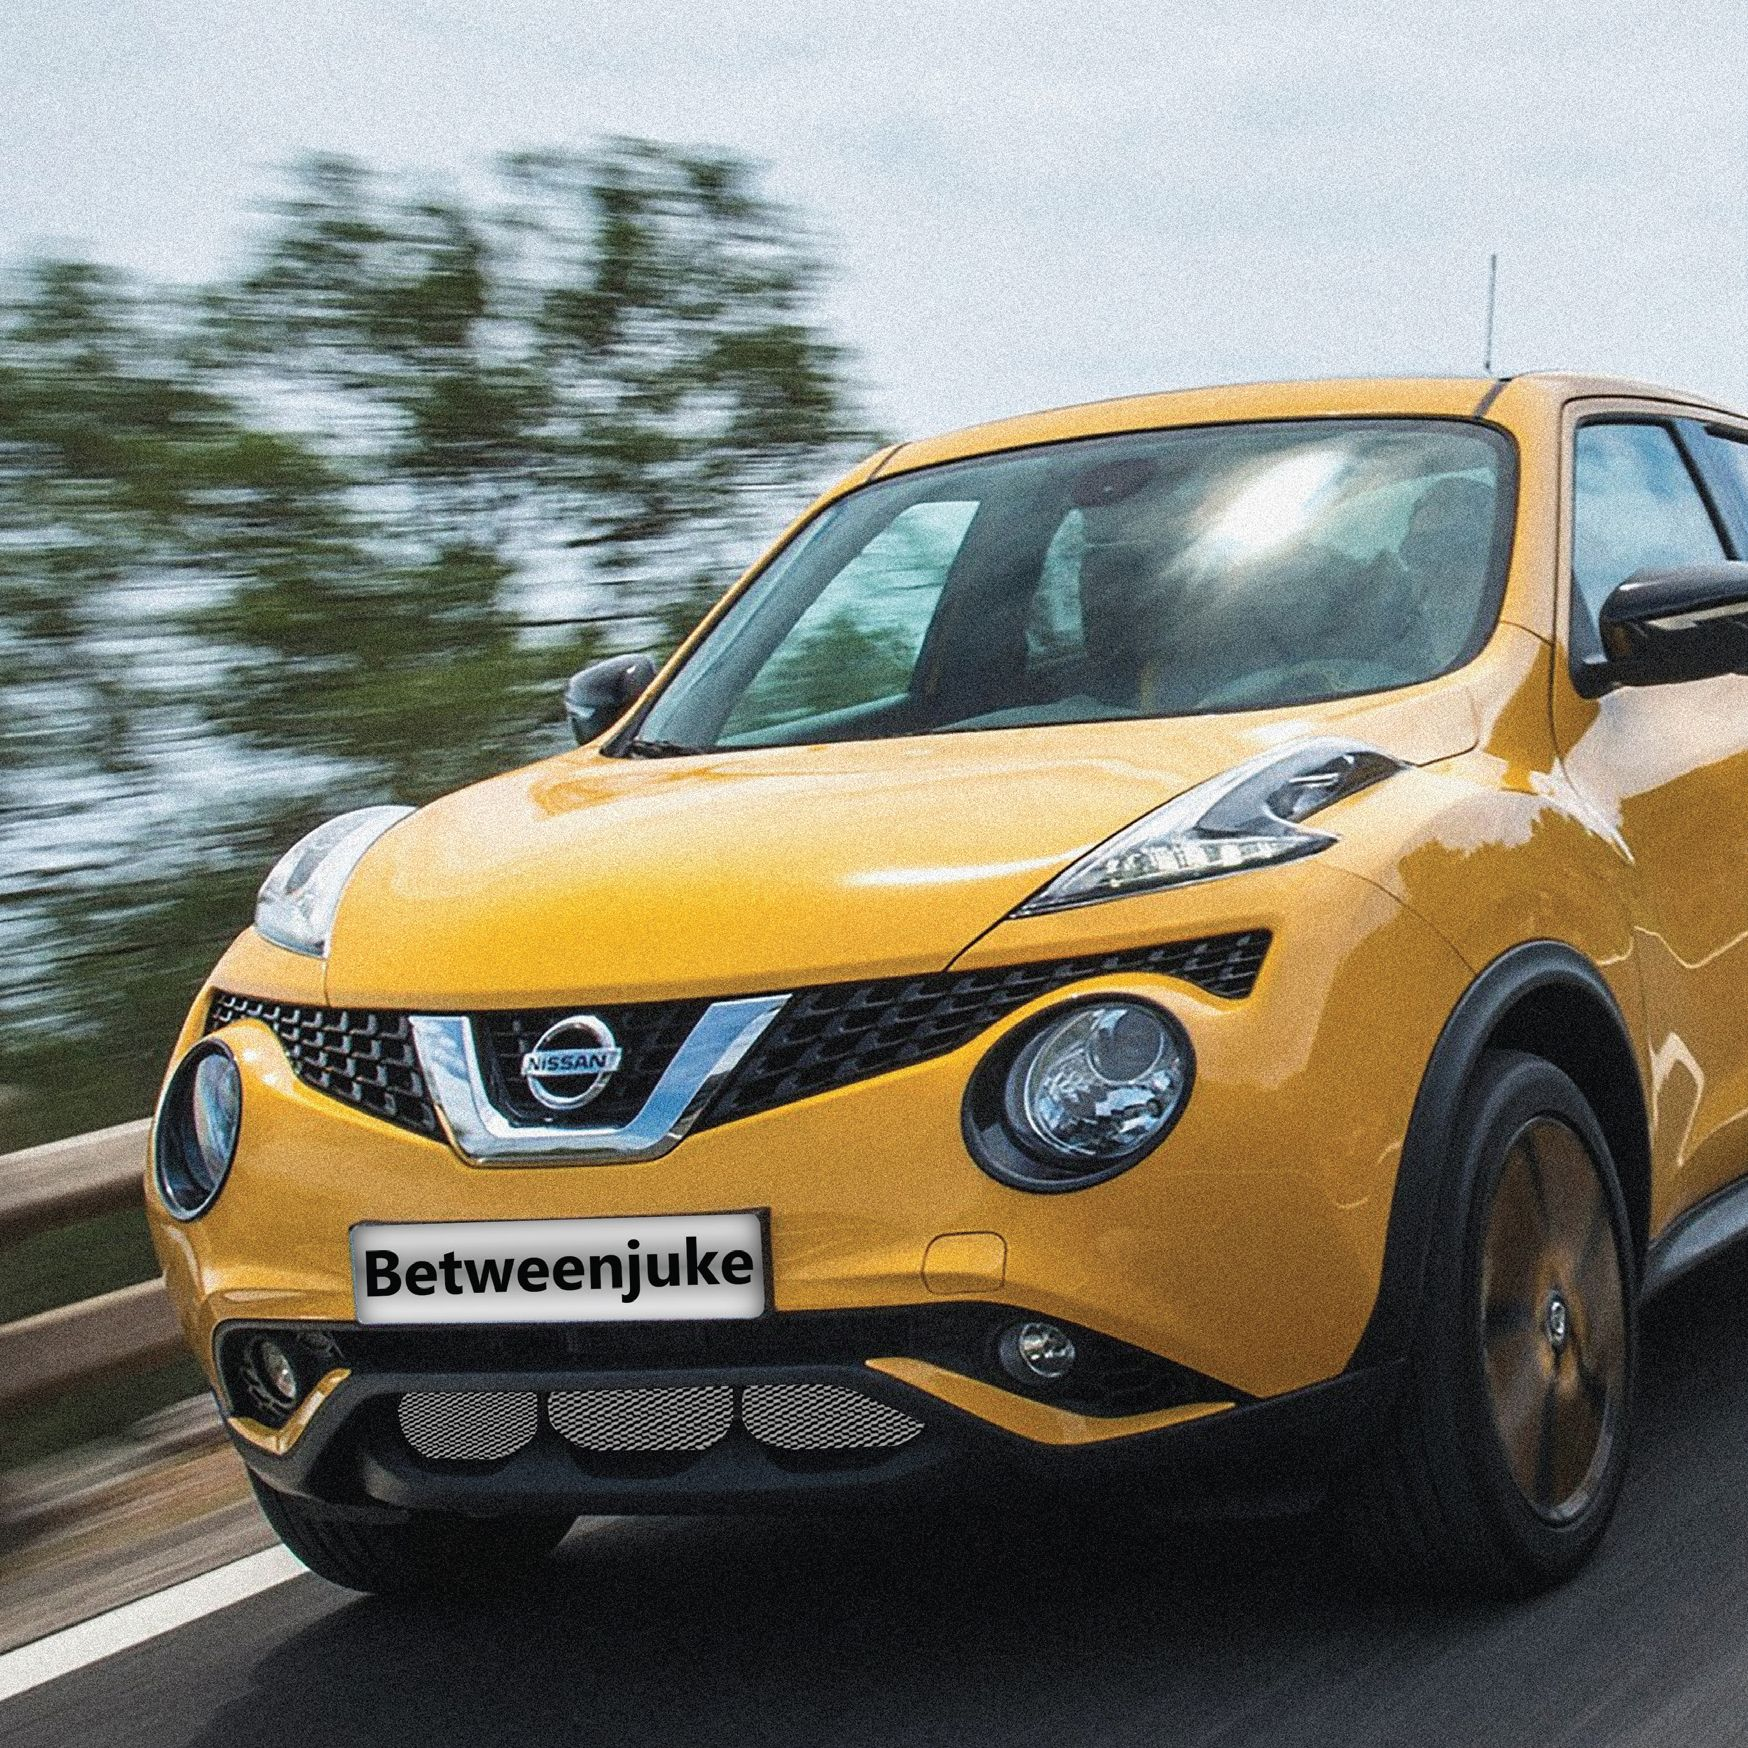 c910e3c3074dc1cec71a08731a671176 Take A Look About Nissan Juke Custom with Fabulous Photos Cars Review